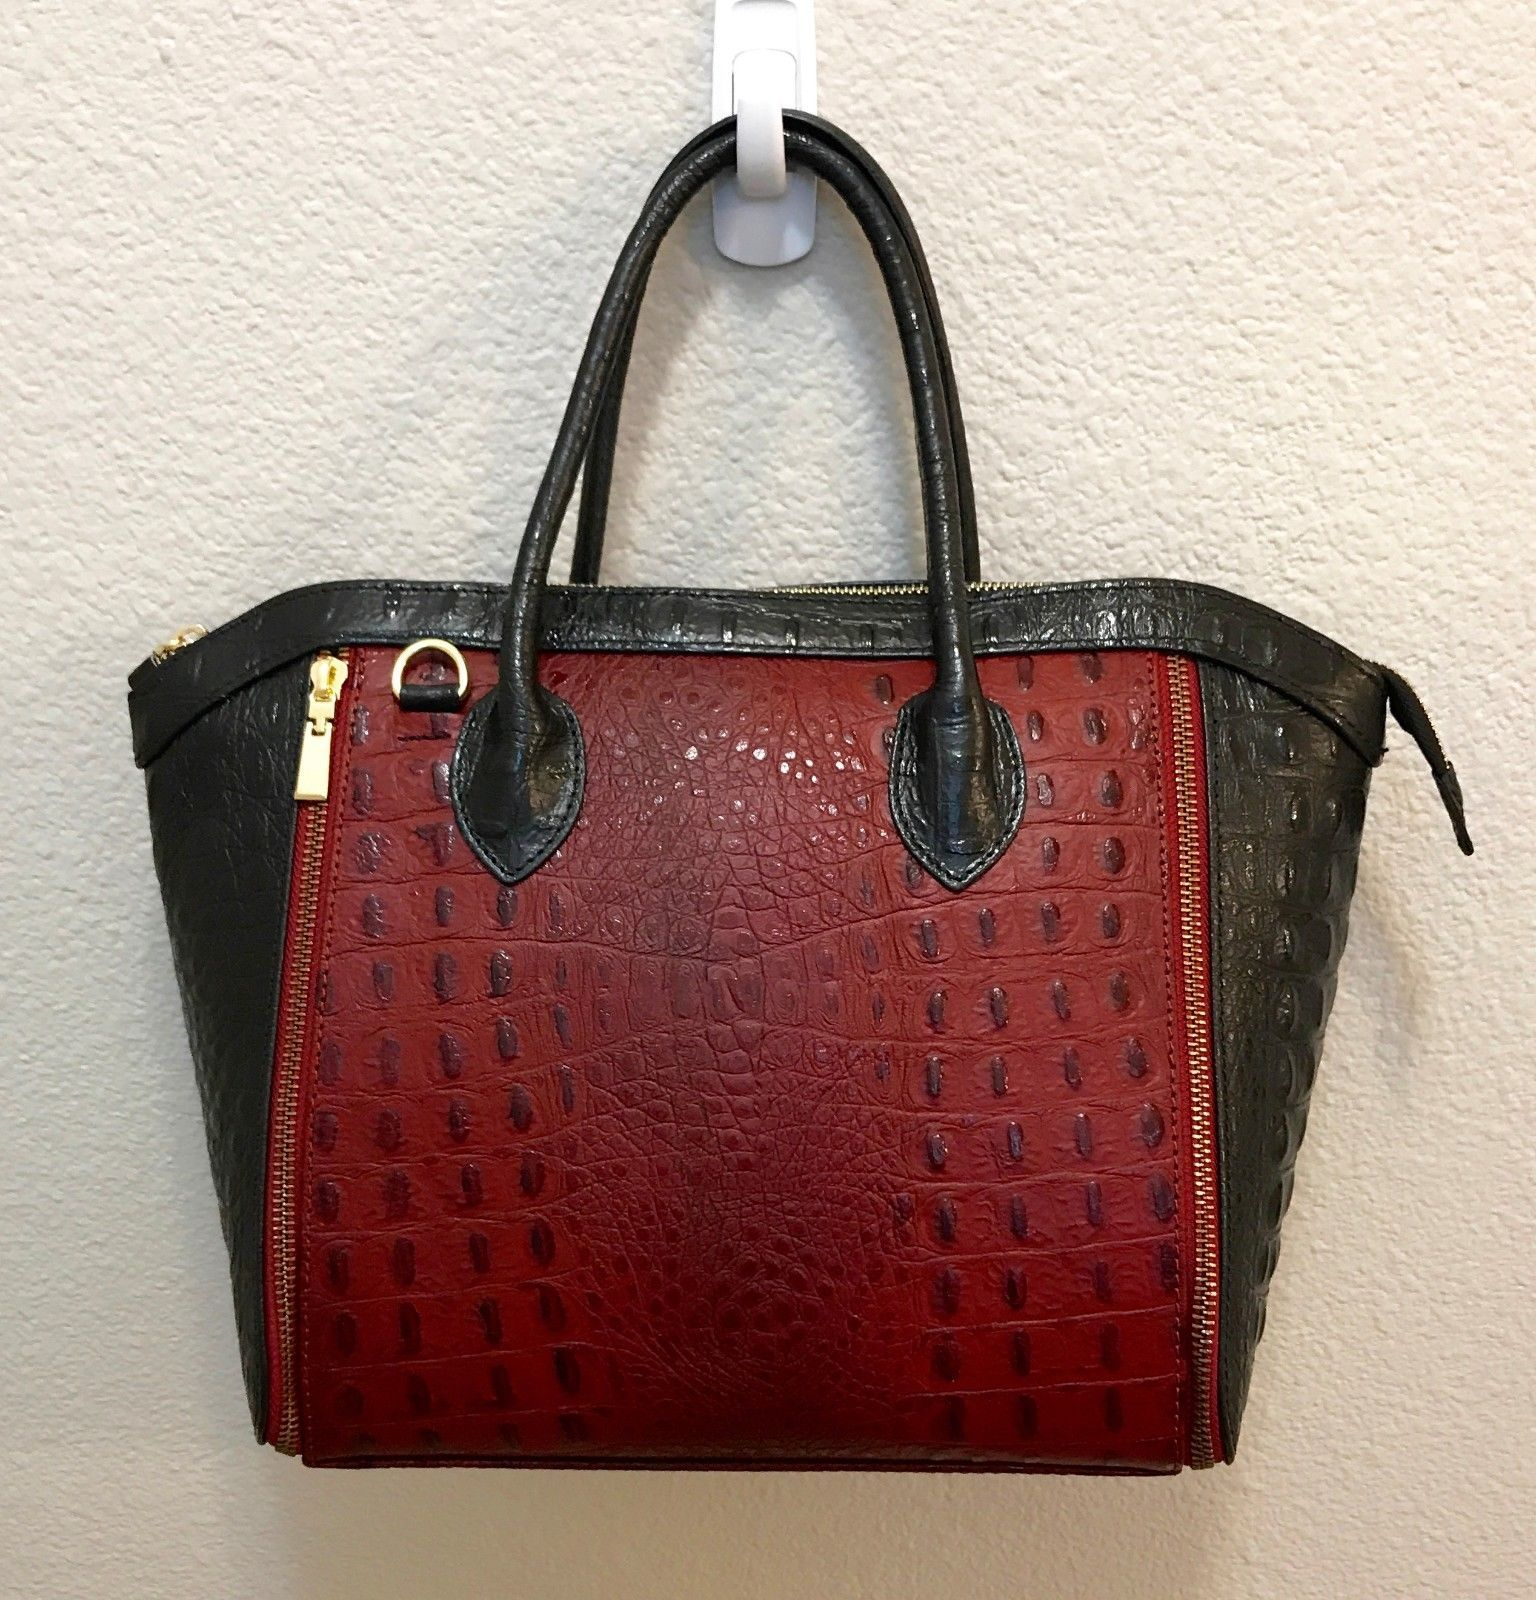 Crocodile Embossed Italian Leather Red Black Color Block  Handbag Satchel Purse